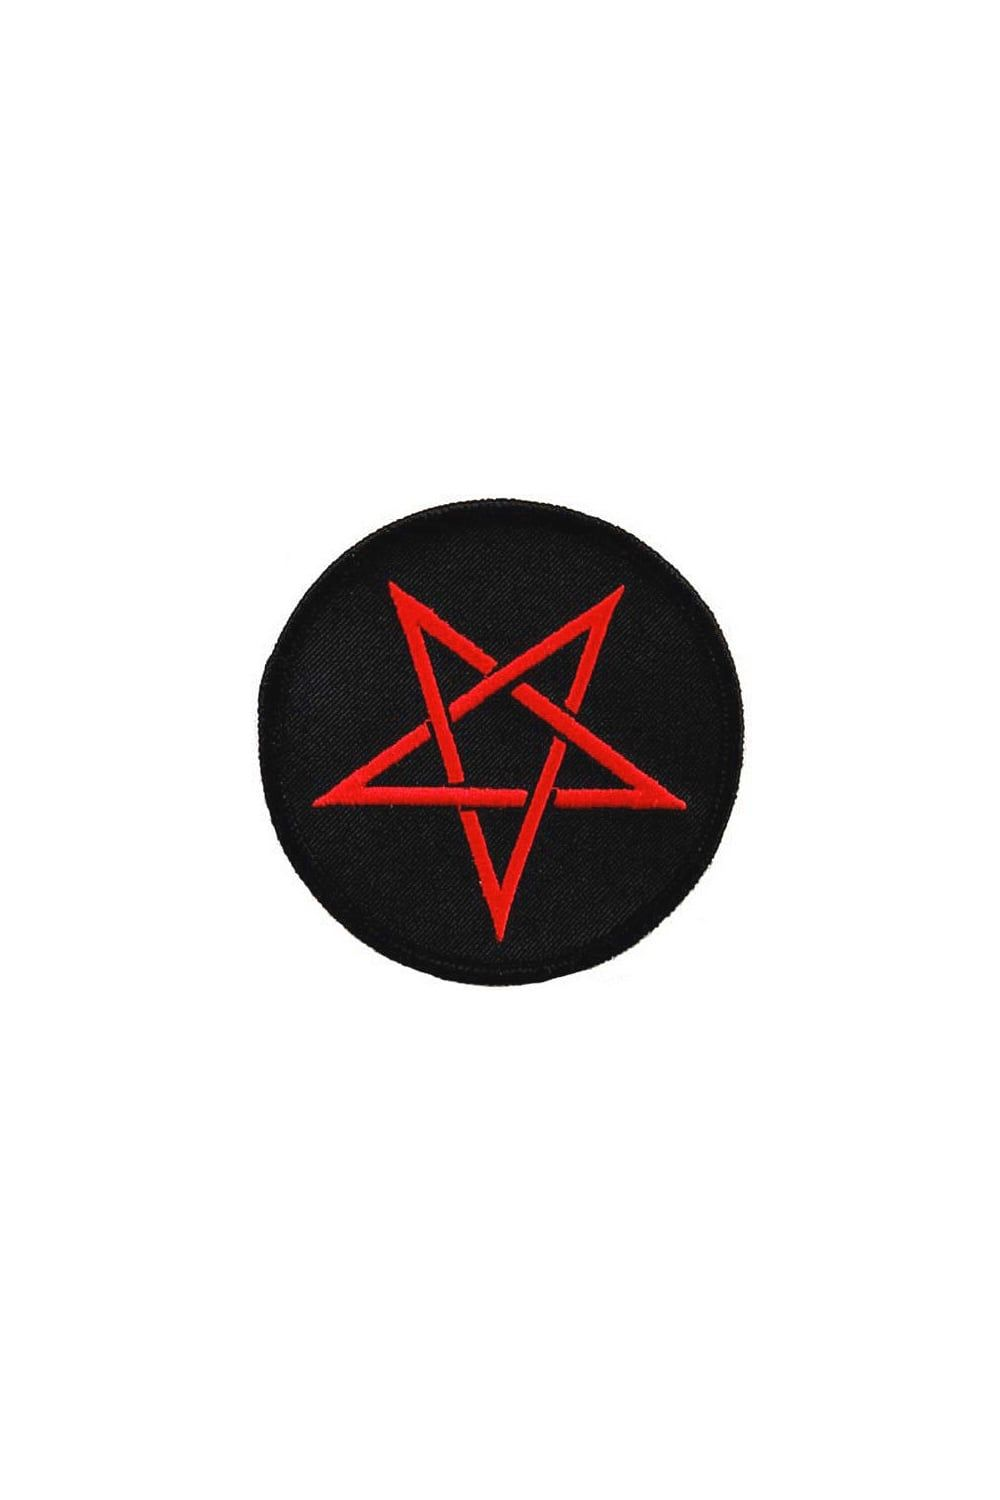 RED PENTAGRAM EMBROIDERED PATCH Wicca Witchcraft DEVIL IRON-ON BLACK RED SATANIC